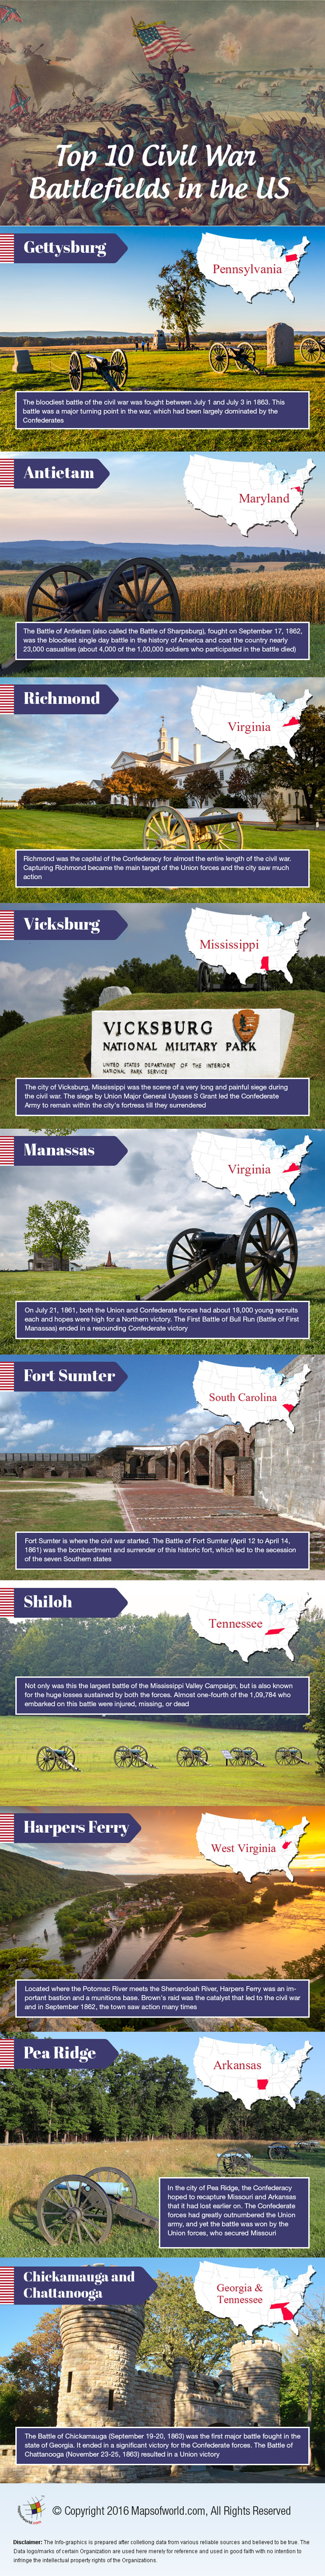 Infographic on Top 10 Civil War Battlefields in the US